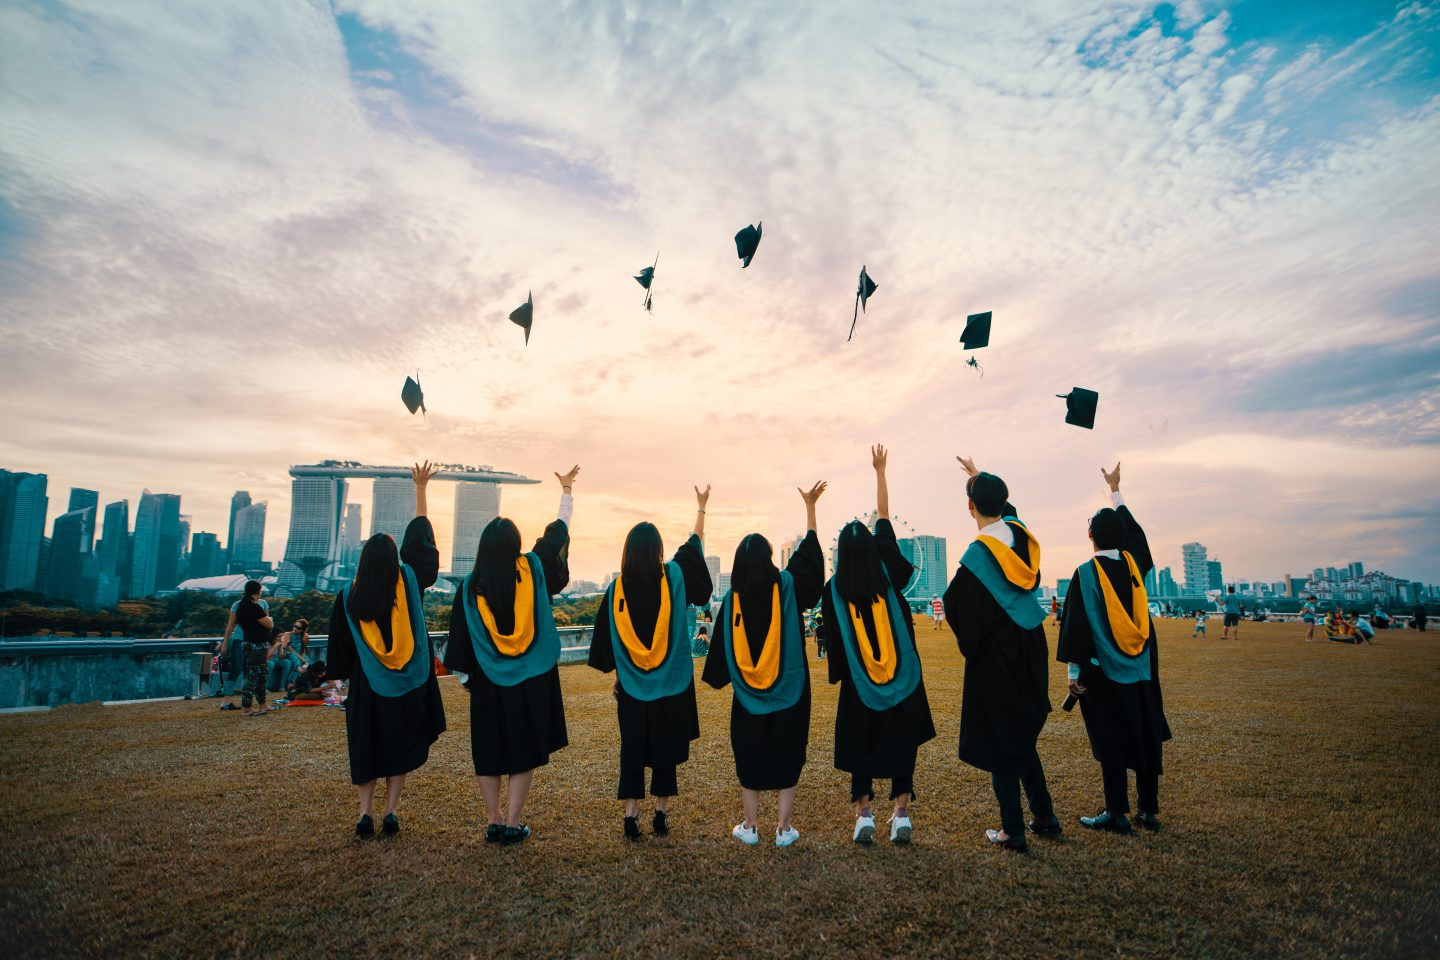 How to narrow the gap between what universities produce and what employers expect